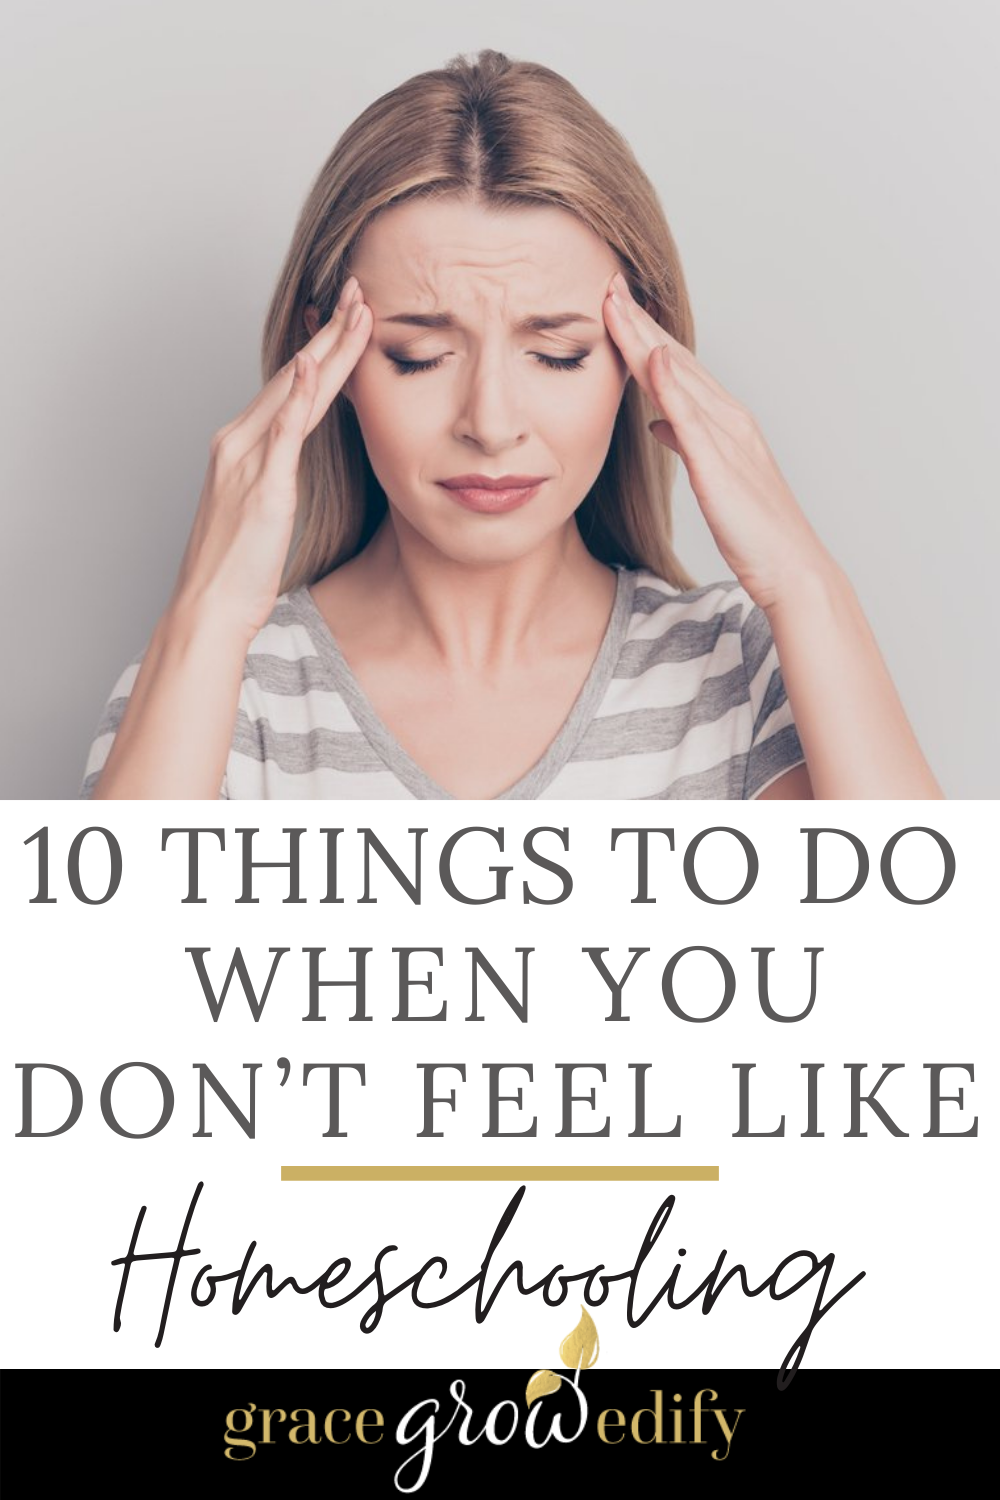 Save these 10 ideas in your homeschooling toolbox for those days when you just don't feel like it! #homeschool #homeschoolideas #relaxedhomeschooling #homeschooltips